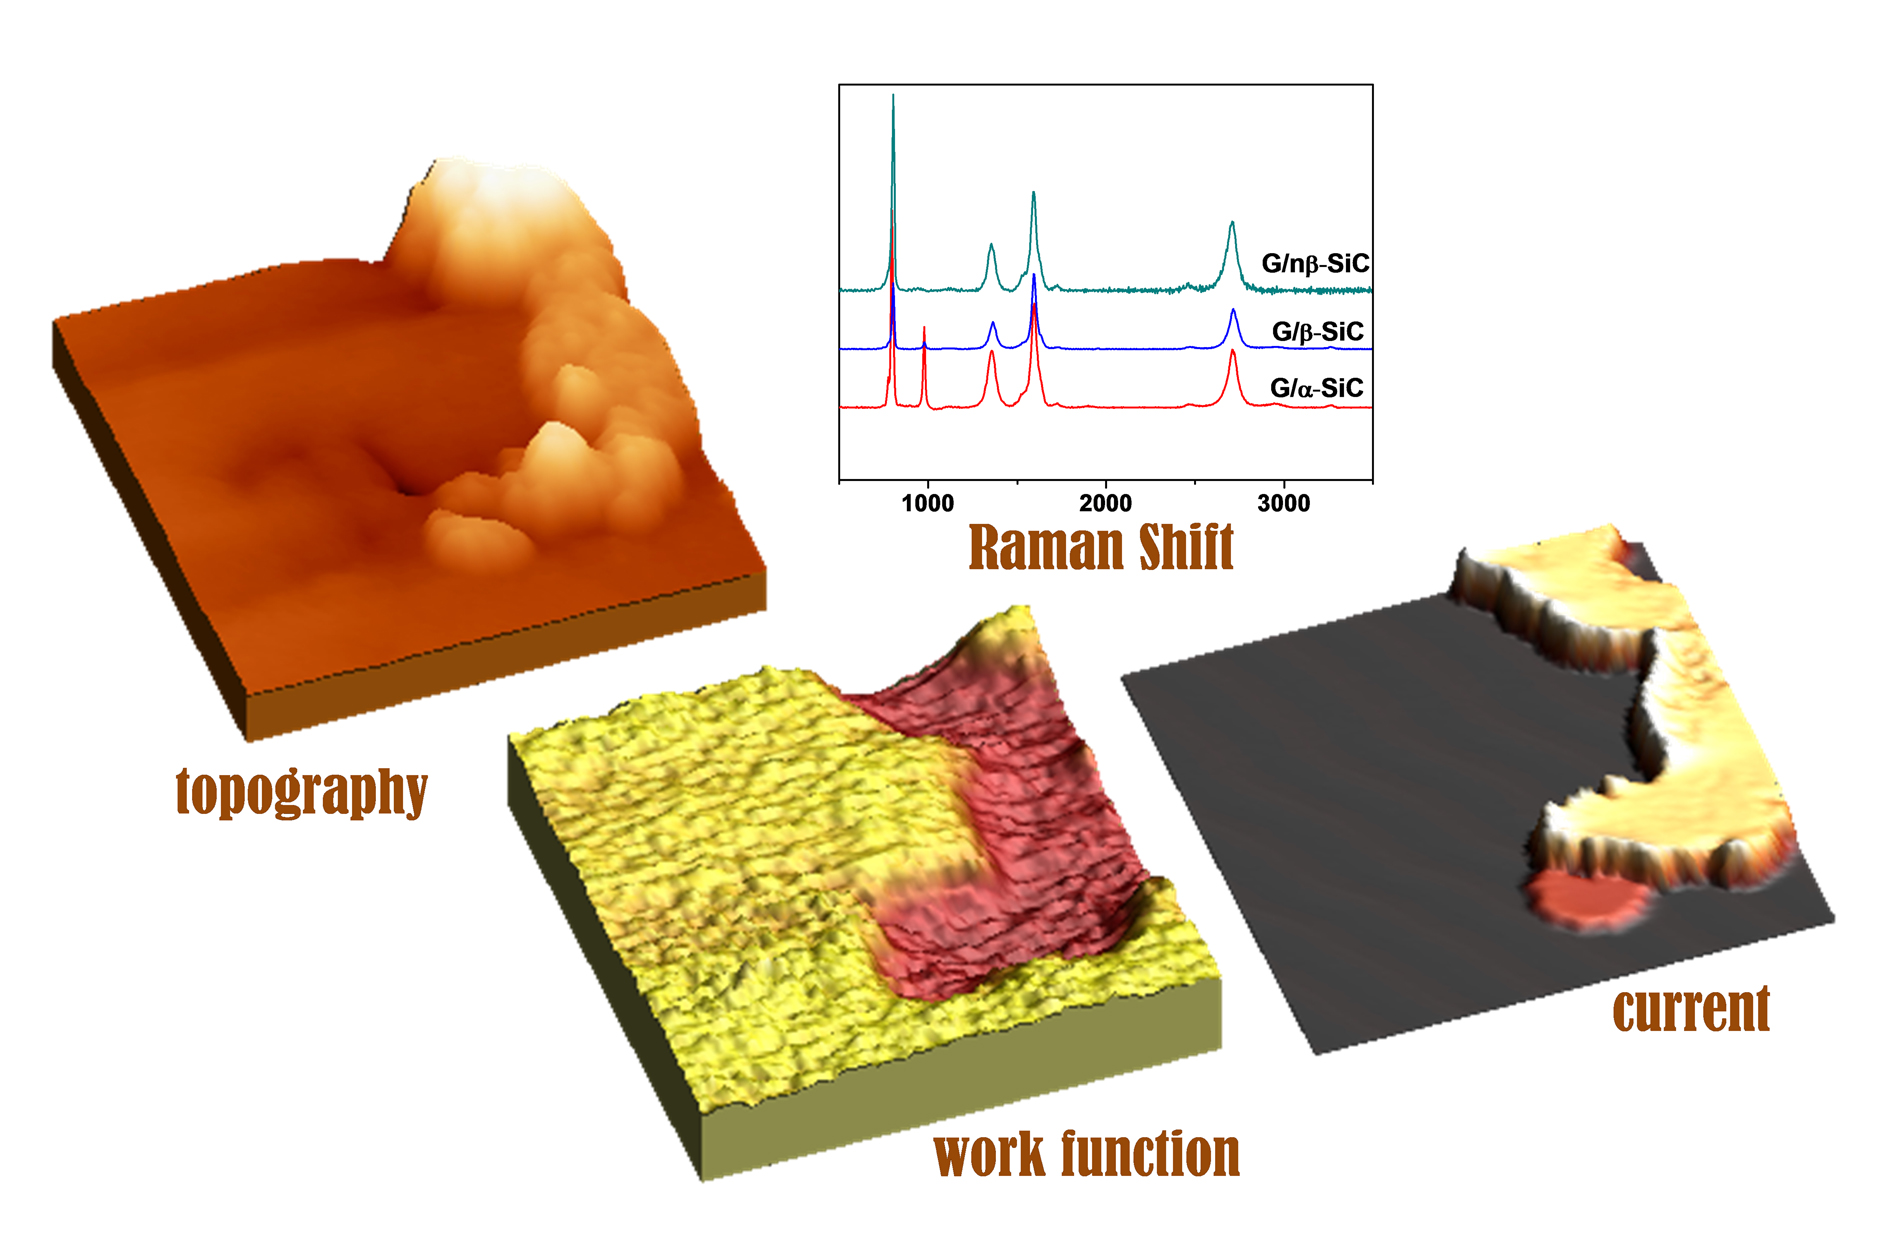 Tribological and electronic surface properties of Graphene/SiC composites